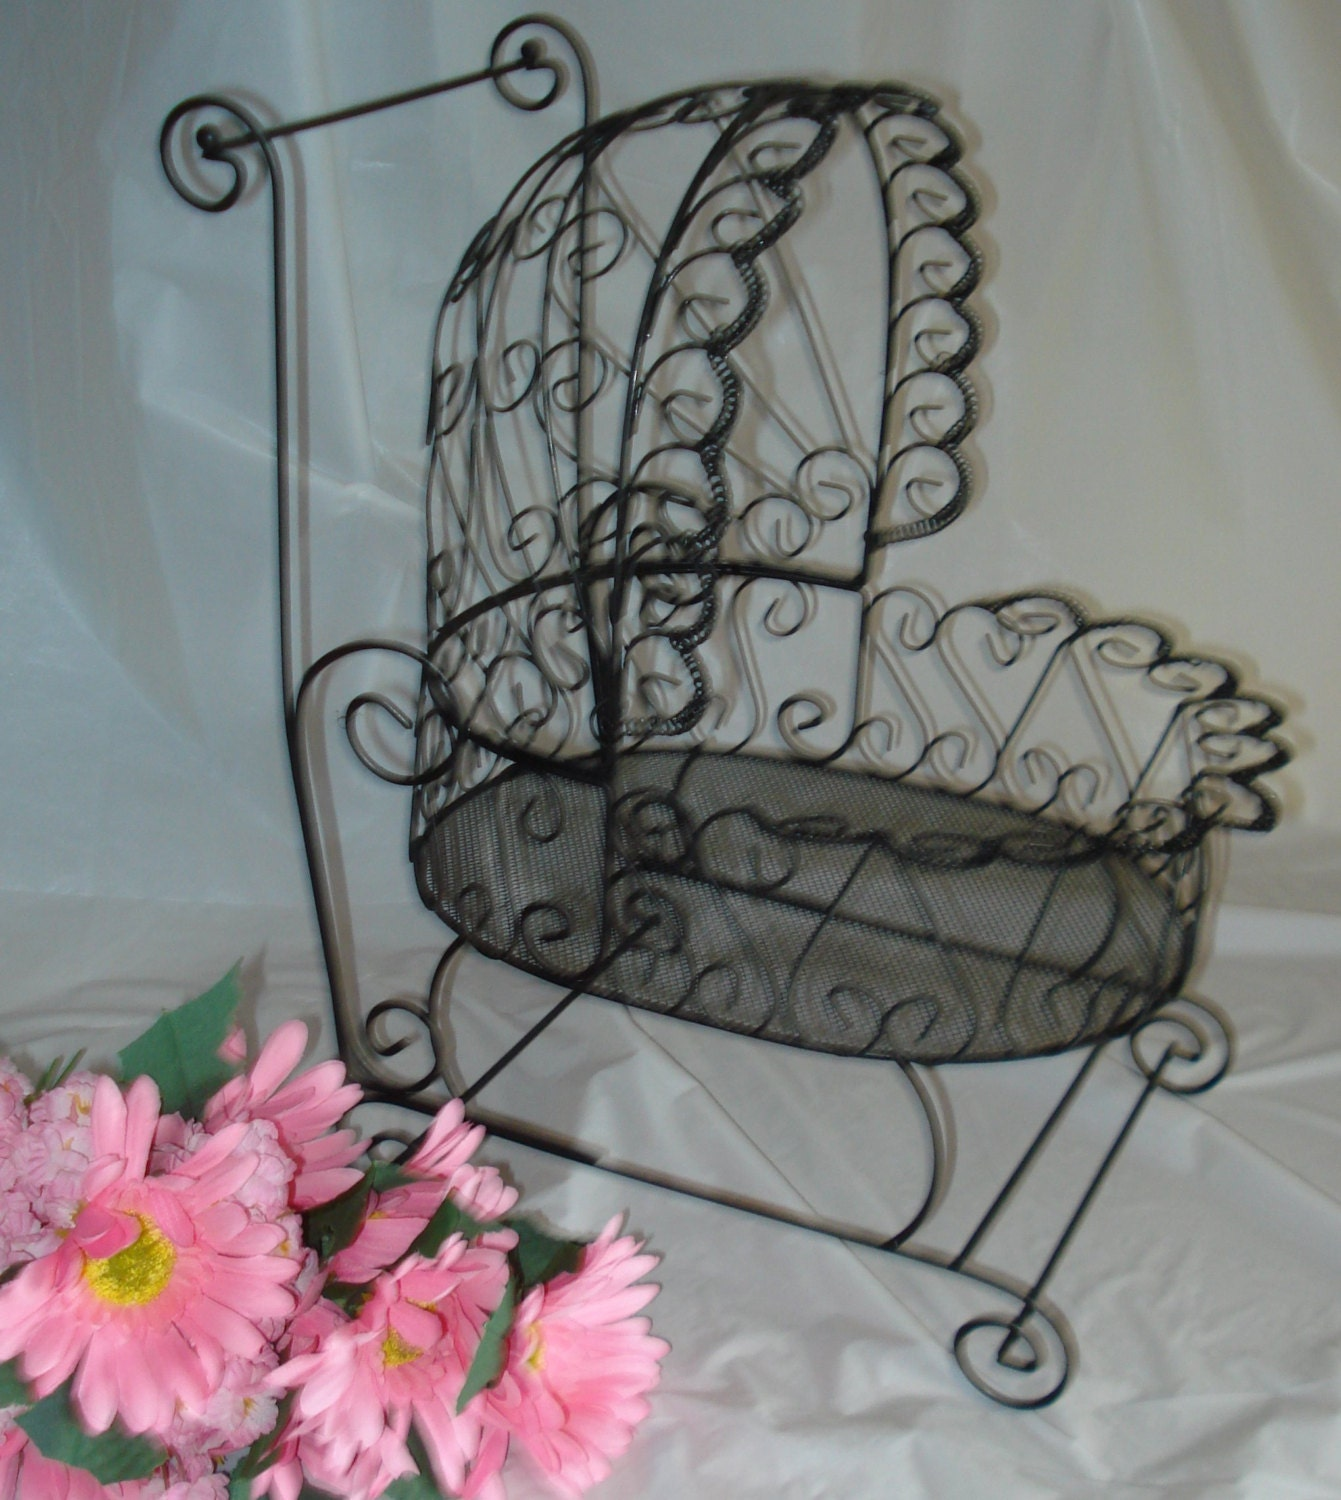 Popular items for small baby buggy on Etsy